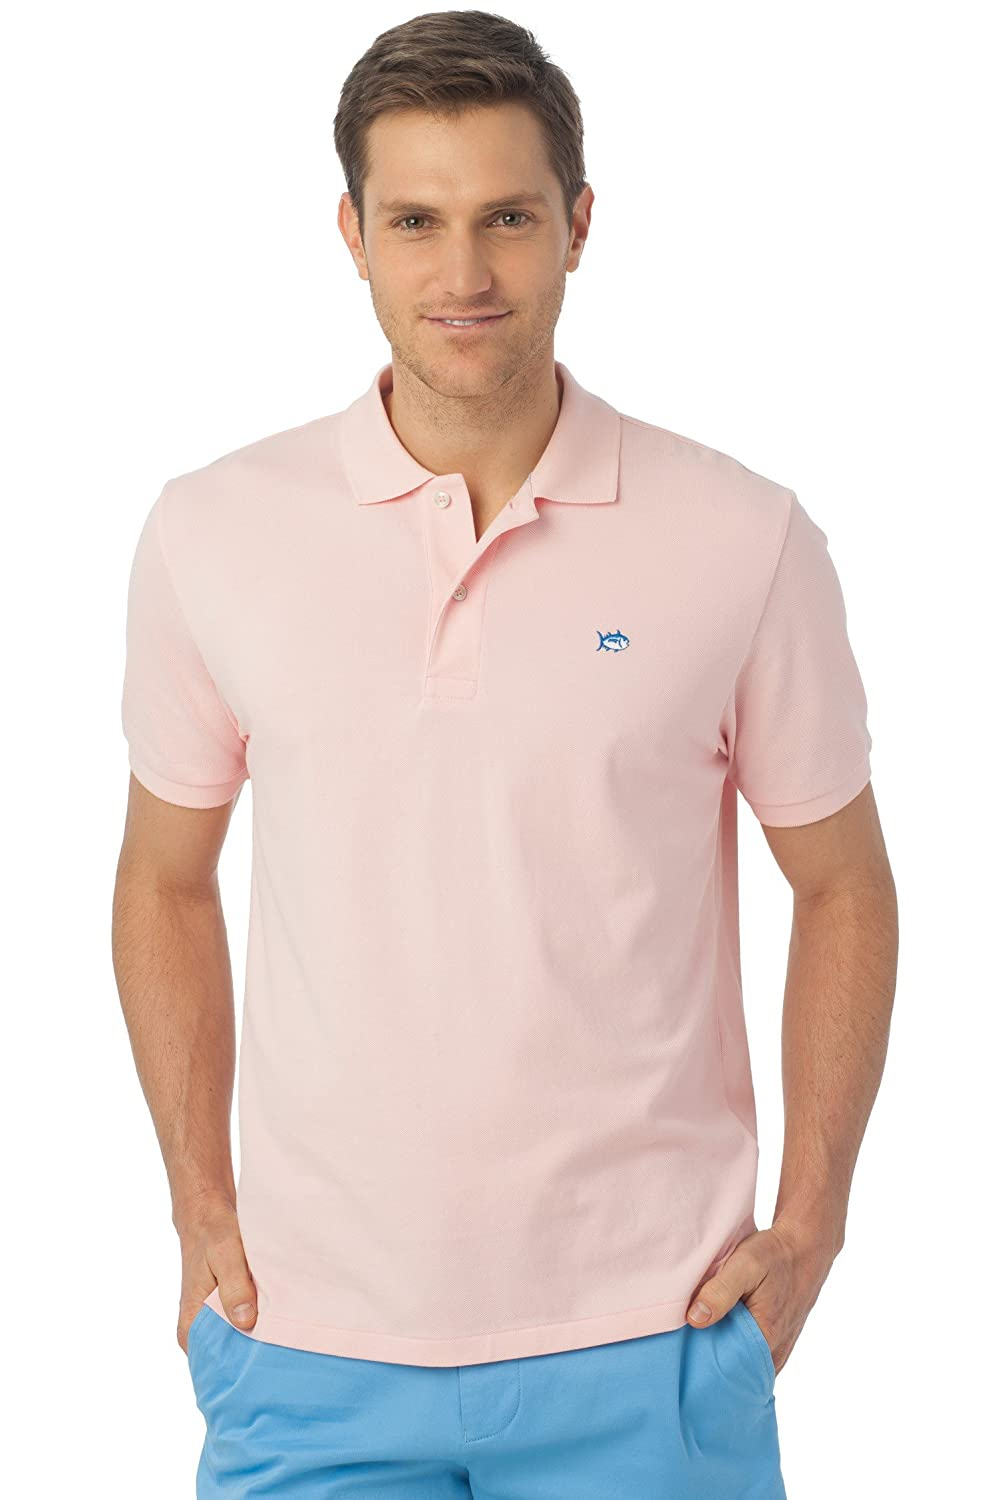 Costco Embroidered Polo Shirts